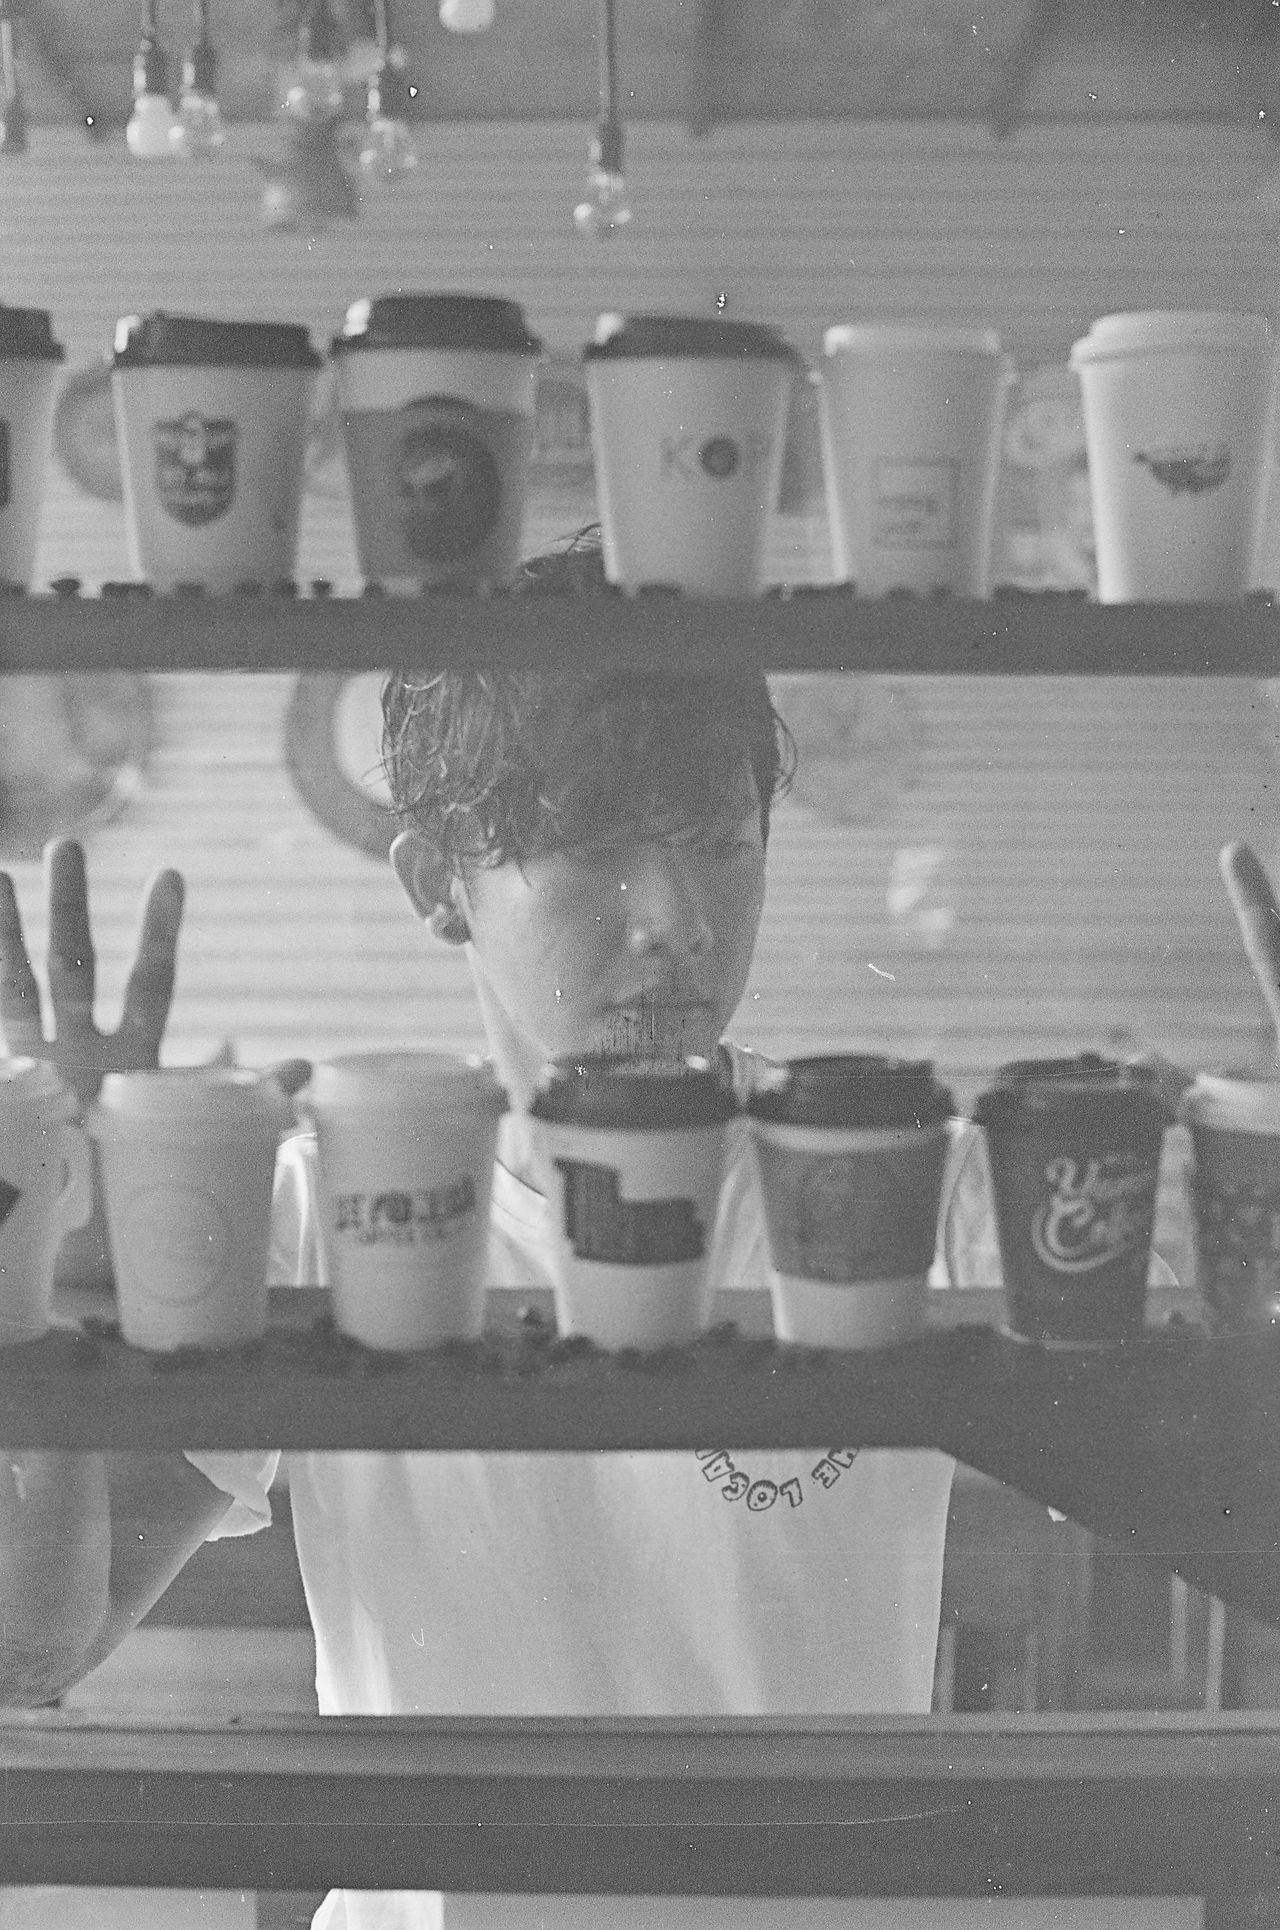 the coffee invasion is alive an well in ubud bali 35mm Film Analogue Photography Bali Bali, Indonesia Close-up Coffe Tumbler Coffee Coffee Culture Coffee Cups Copy Space Day Film Photography Filmisnotdead Ilford Indonesia_photography Indoors  Large Group Of Objects Moody Pattern Pieces Portrait Of A Man  Shelf Takeaway Cups Through A Window Variation Young Adult